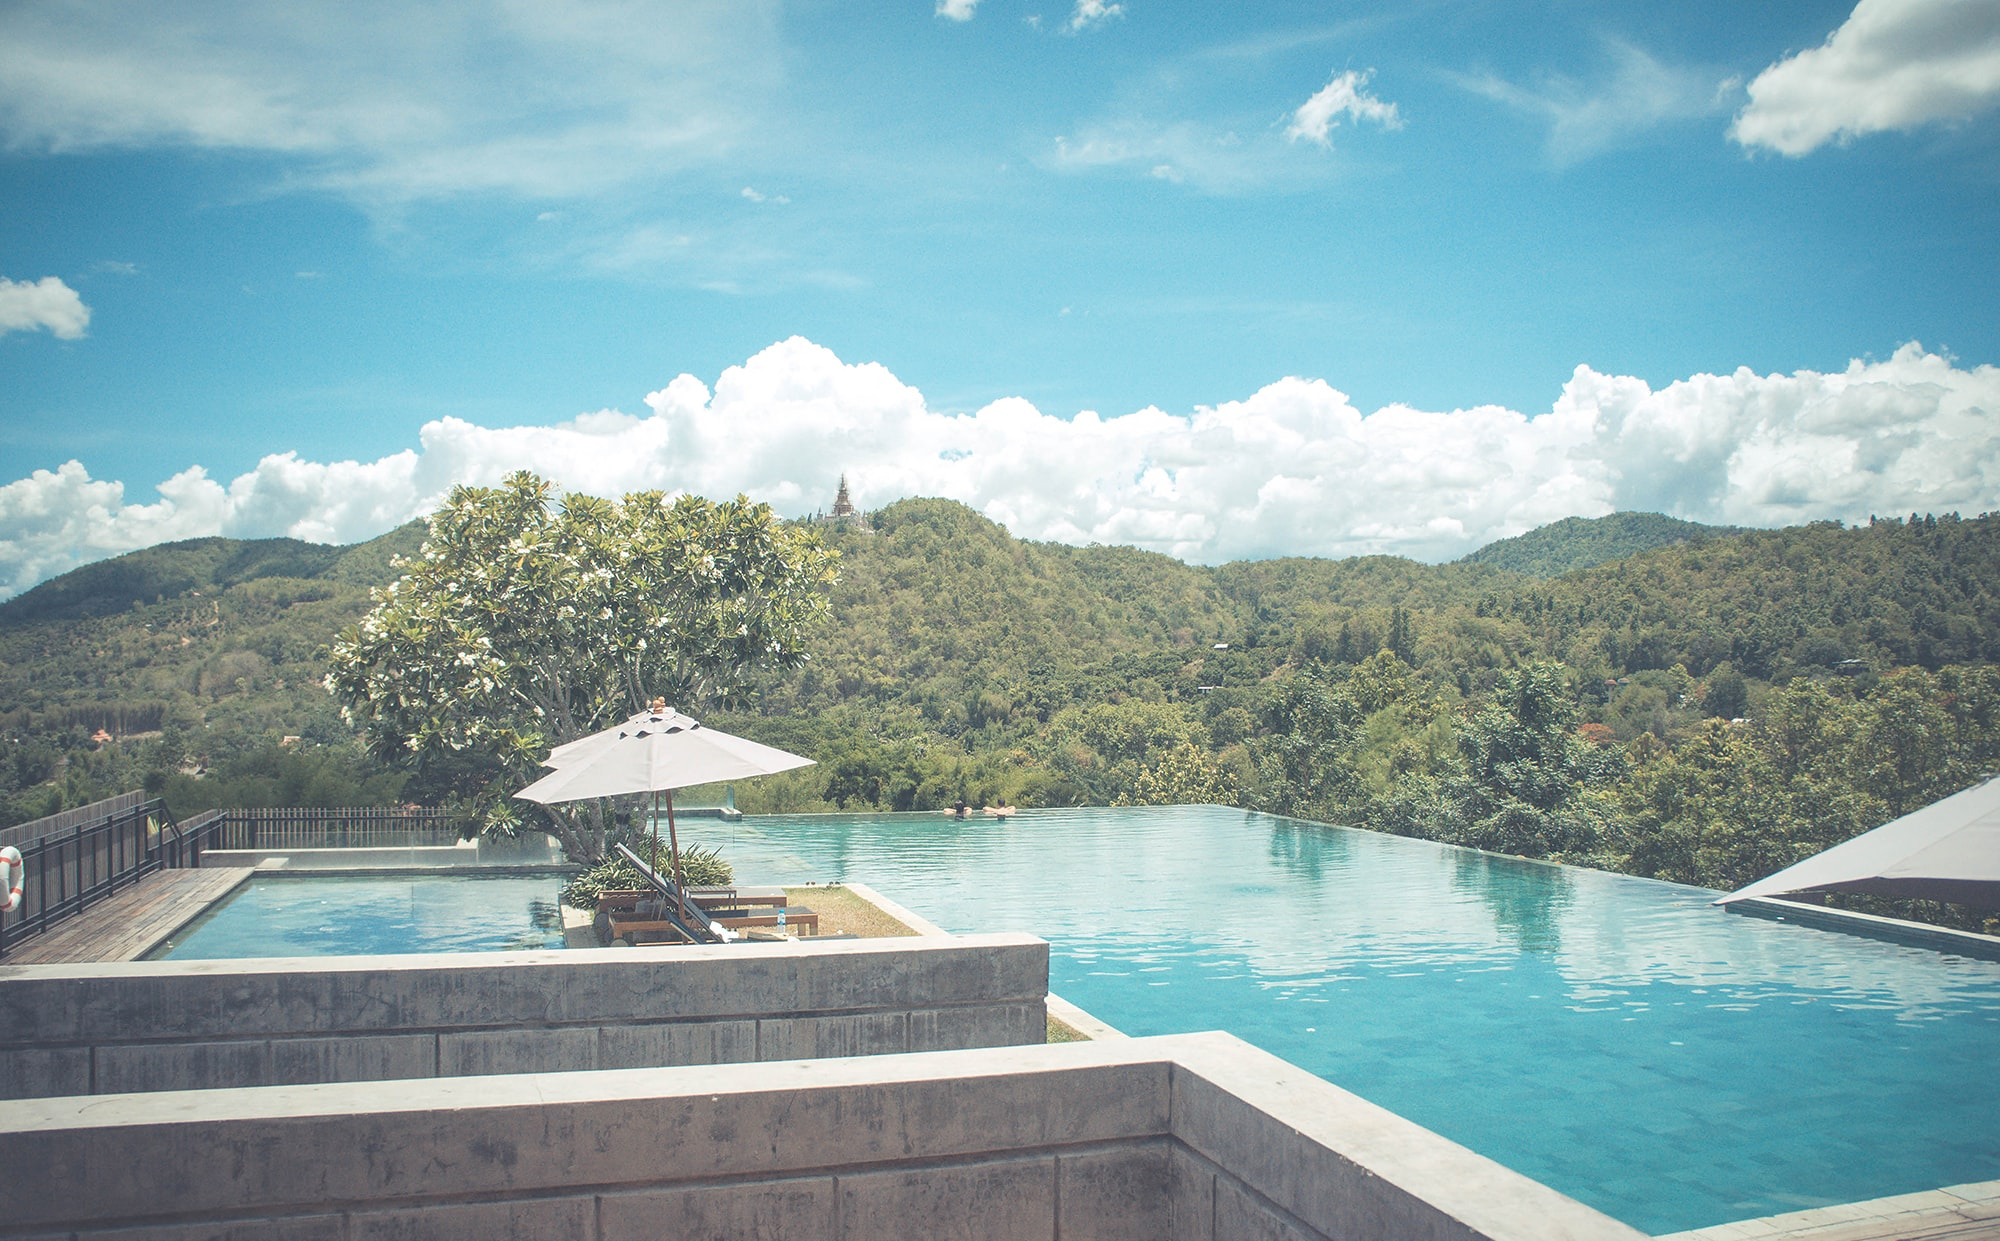 A large sunlit pool with a view on wooded hills